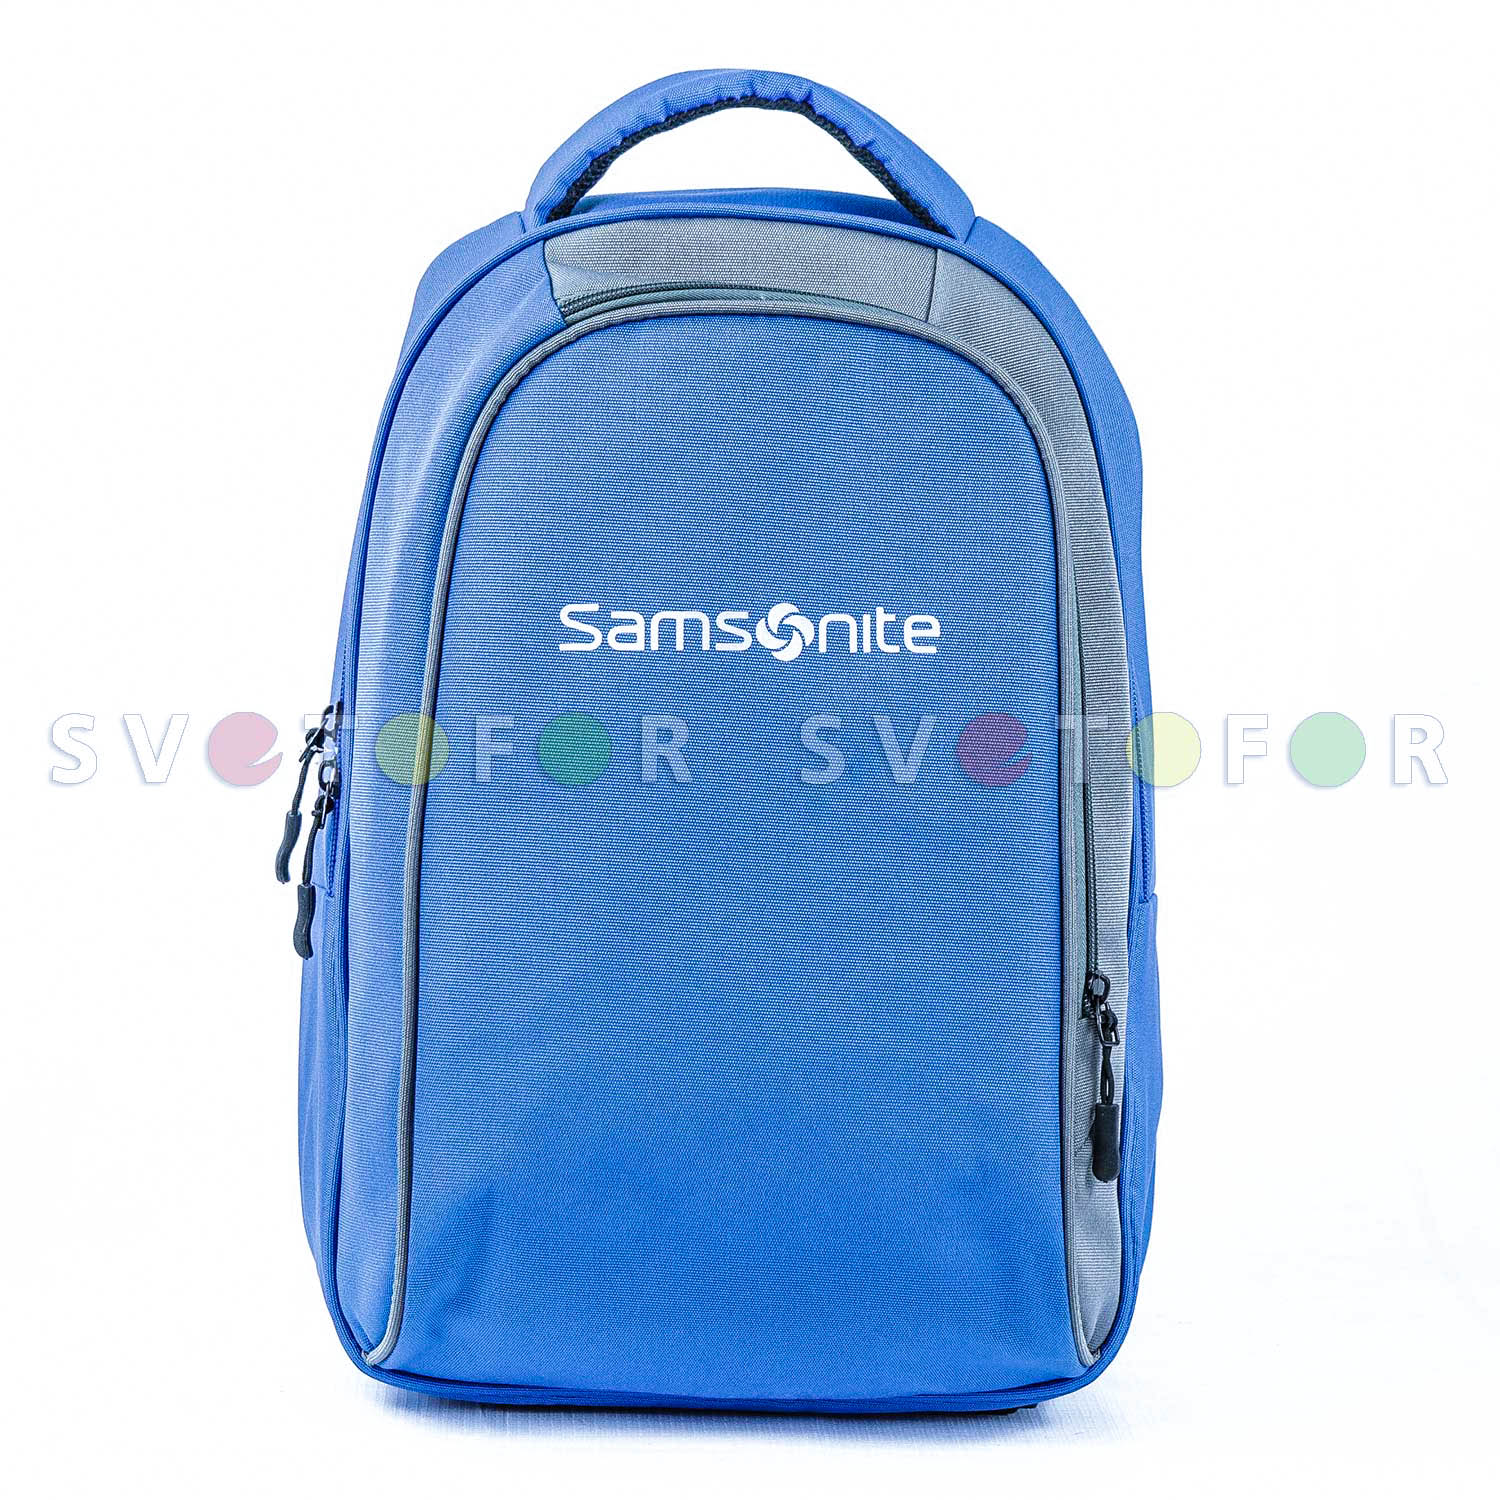 Школьный рюкзак Samsonite 7943 полиэстер синий